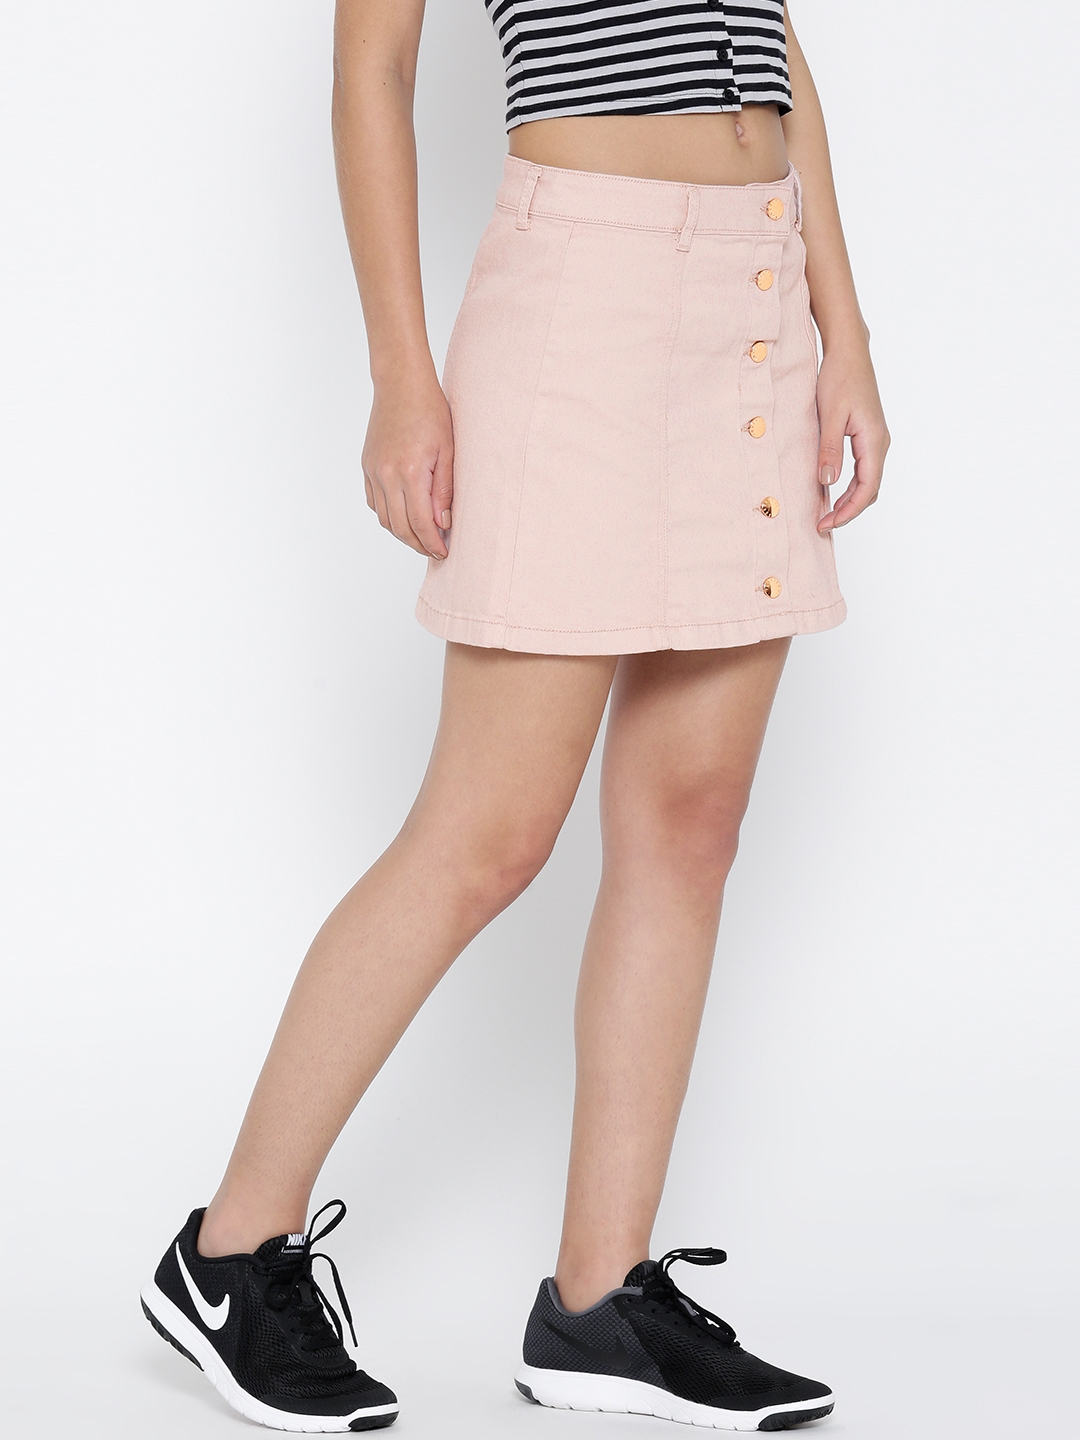 31254e5b0 Buy FOREVER 21 Pink Denim A Line Skirt - Skirts for Women 1762495 ...